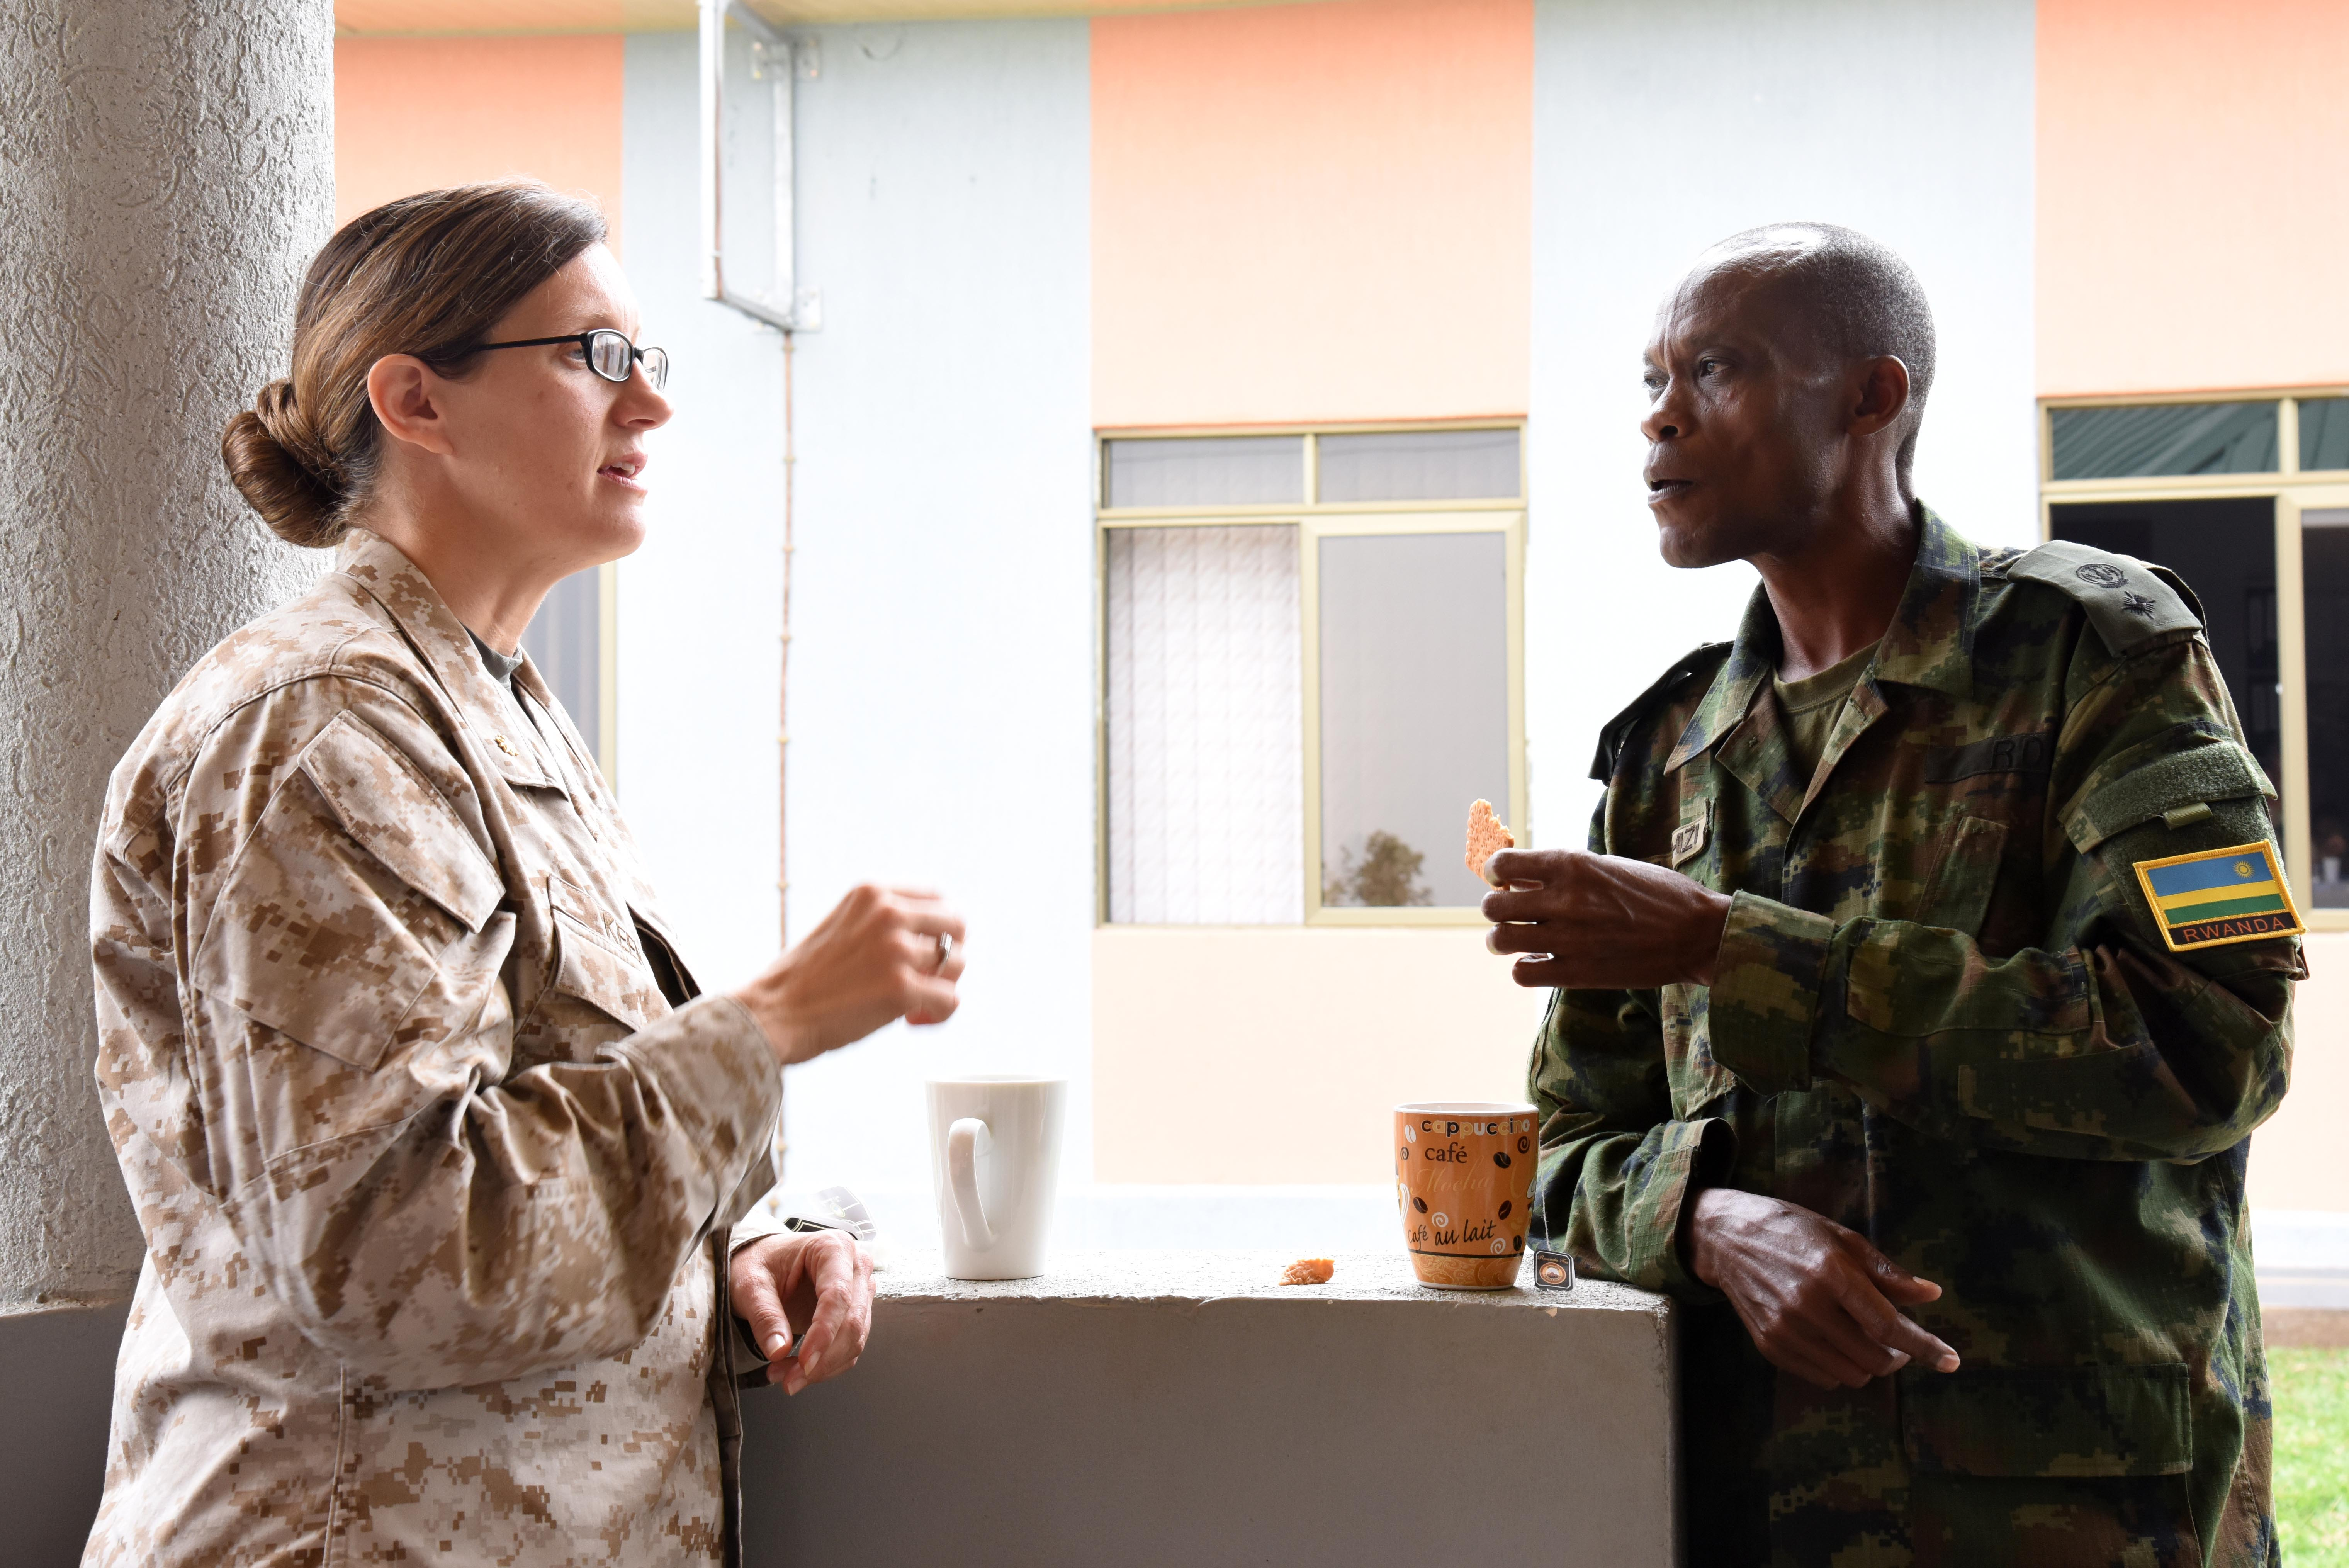 U.S. Marine Corps Maj. Bevin Keen, Combined Joint Task Force–Horn of Africa engineer, speaks with Rwandan Defense Force Lt. Col. John Gahizi, RDF Engineer, during a tea break at the RDF Engineering Brigade Headquarters near Kigali, Rwanda, Dec. 15, 2015. Engineers from CJTF-HOA and RDF exchanged best practices for planning, building, maintaining and breaking down expeditionary base camps. (U.S. Air Force photo by Staff Sgt. Victoria Sneed)